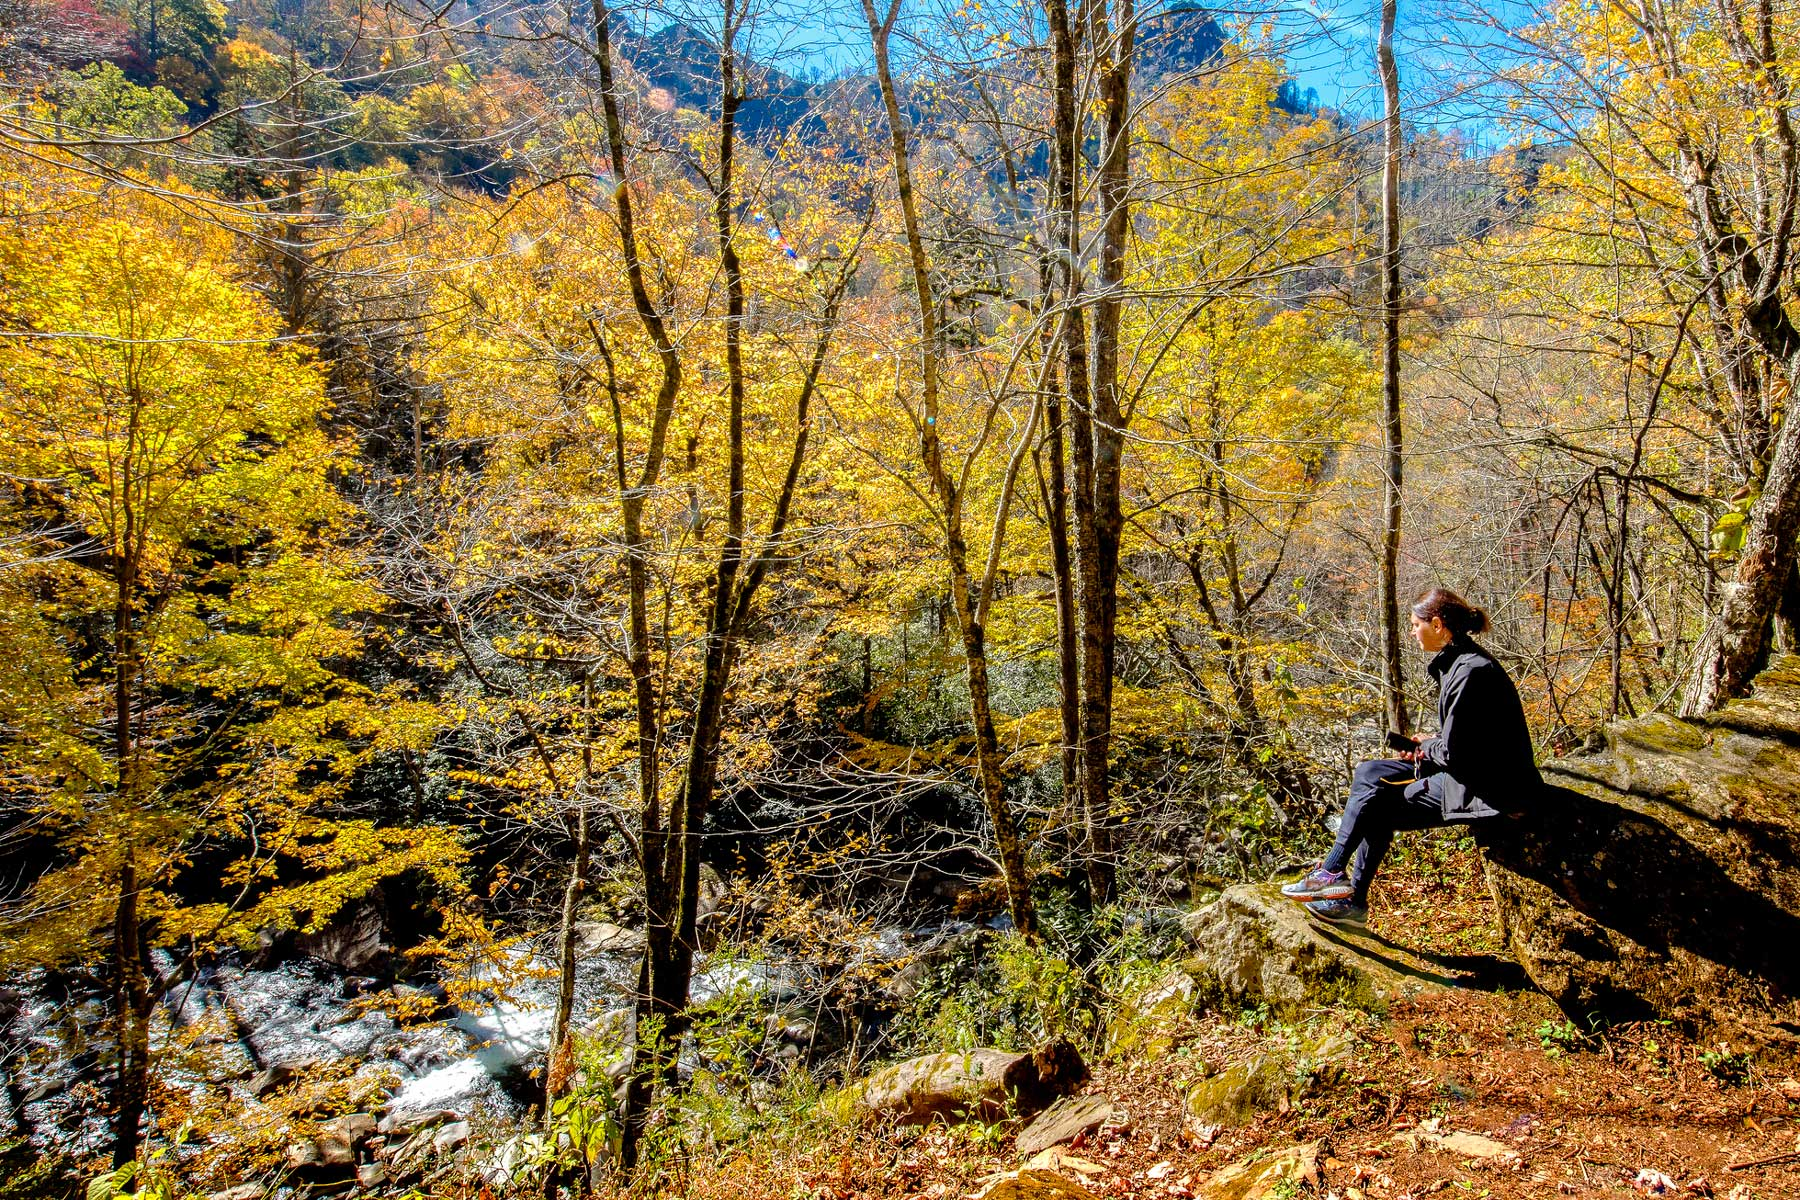 Woman viewing Peaking Fall colors in the Chimney Tops area of the Great Smoky Mountains National Park in Tennessee, USA.